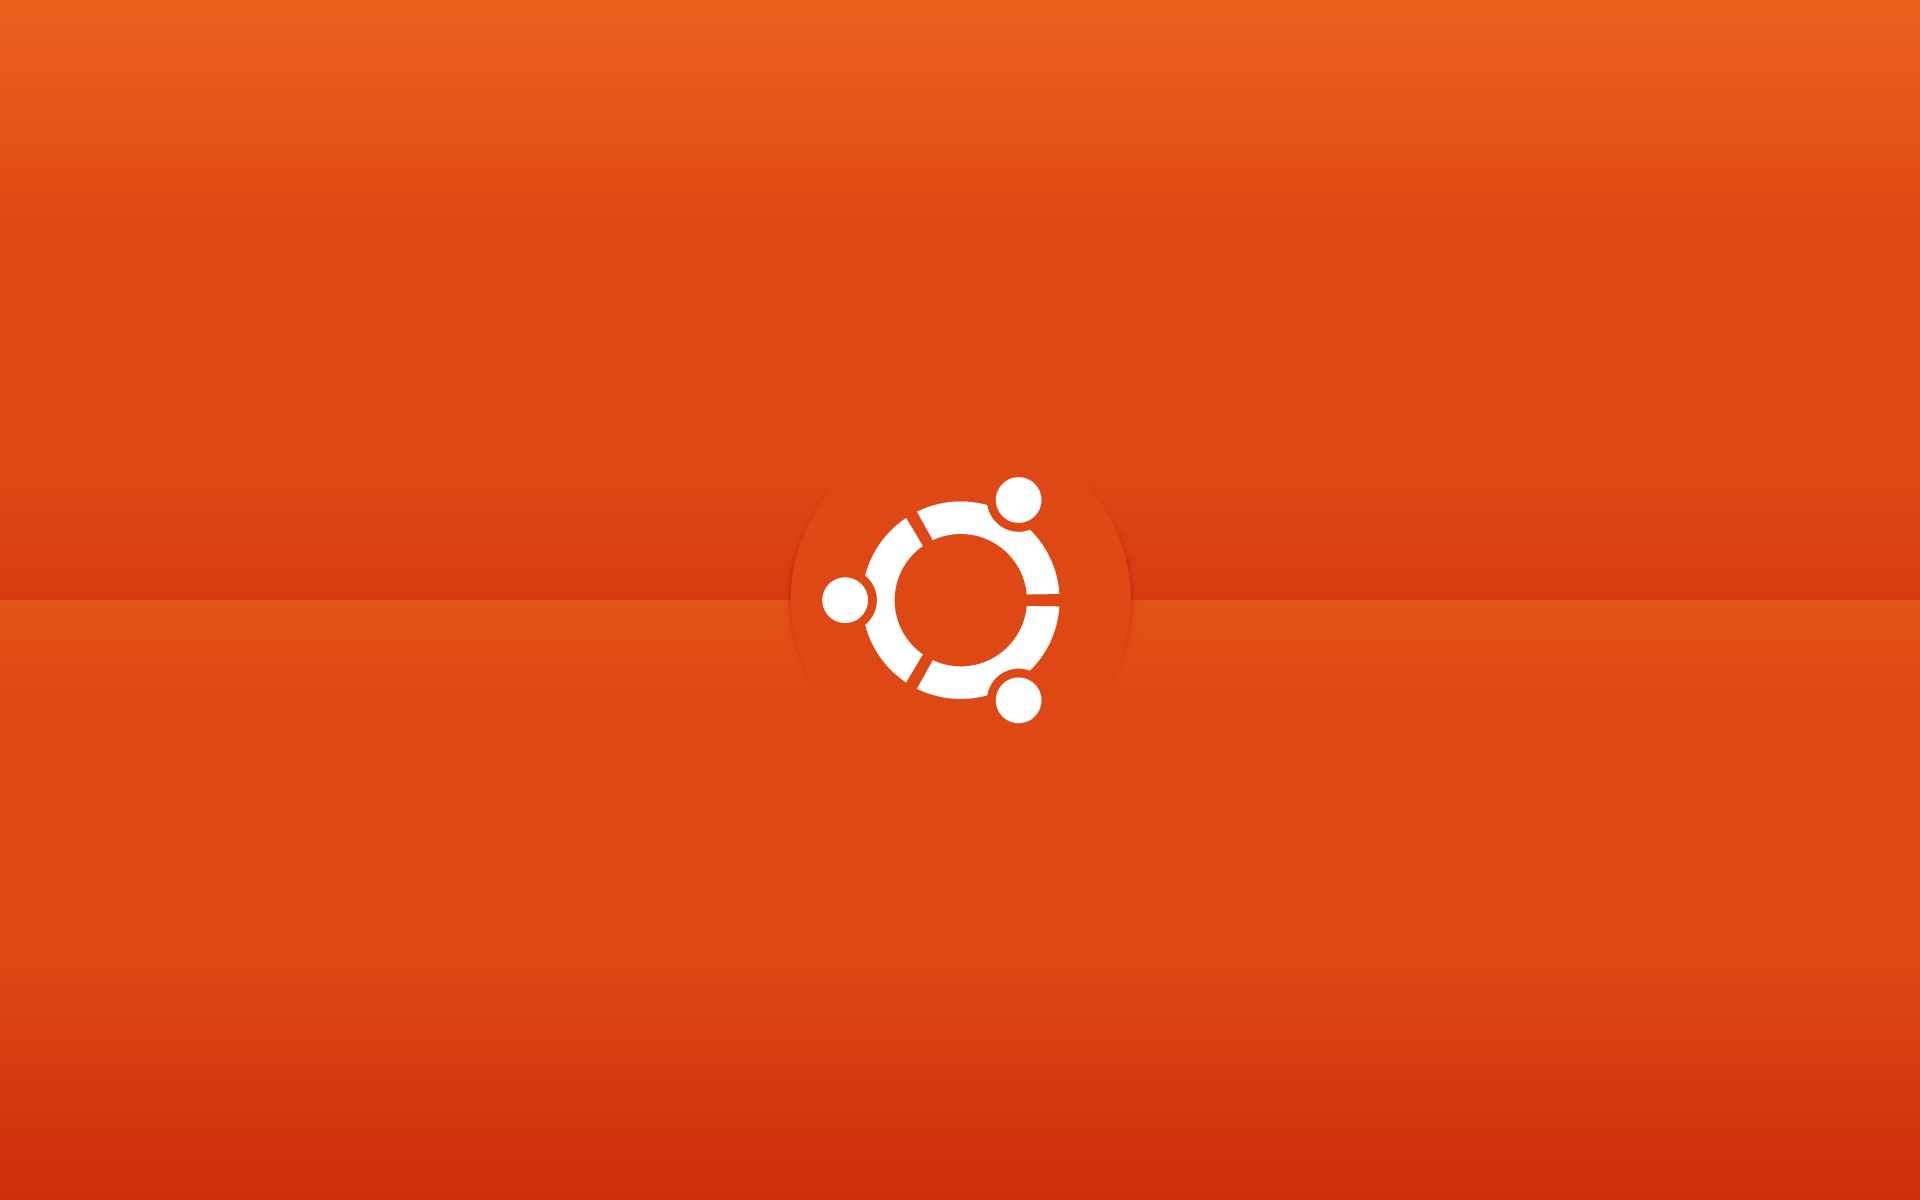 ubuntu wallpaper orange